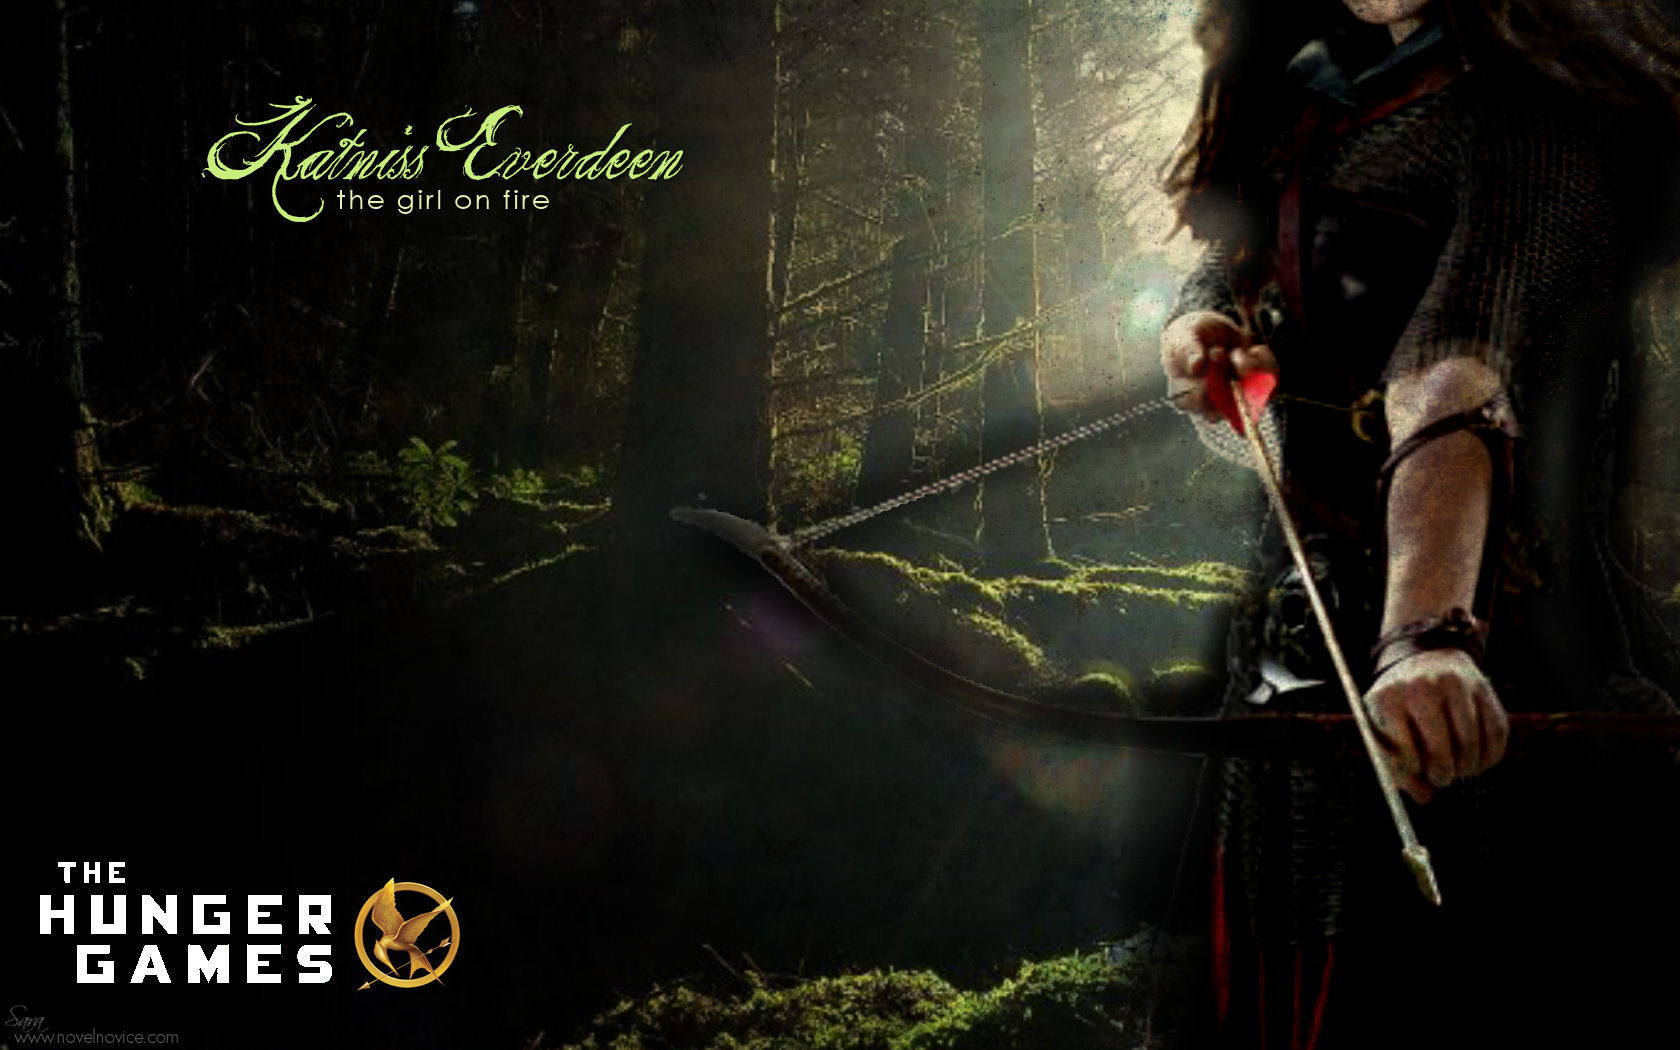 Hunger Games Movie Quotes Backgrounds QuotesGram 1680x1050